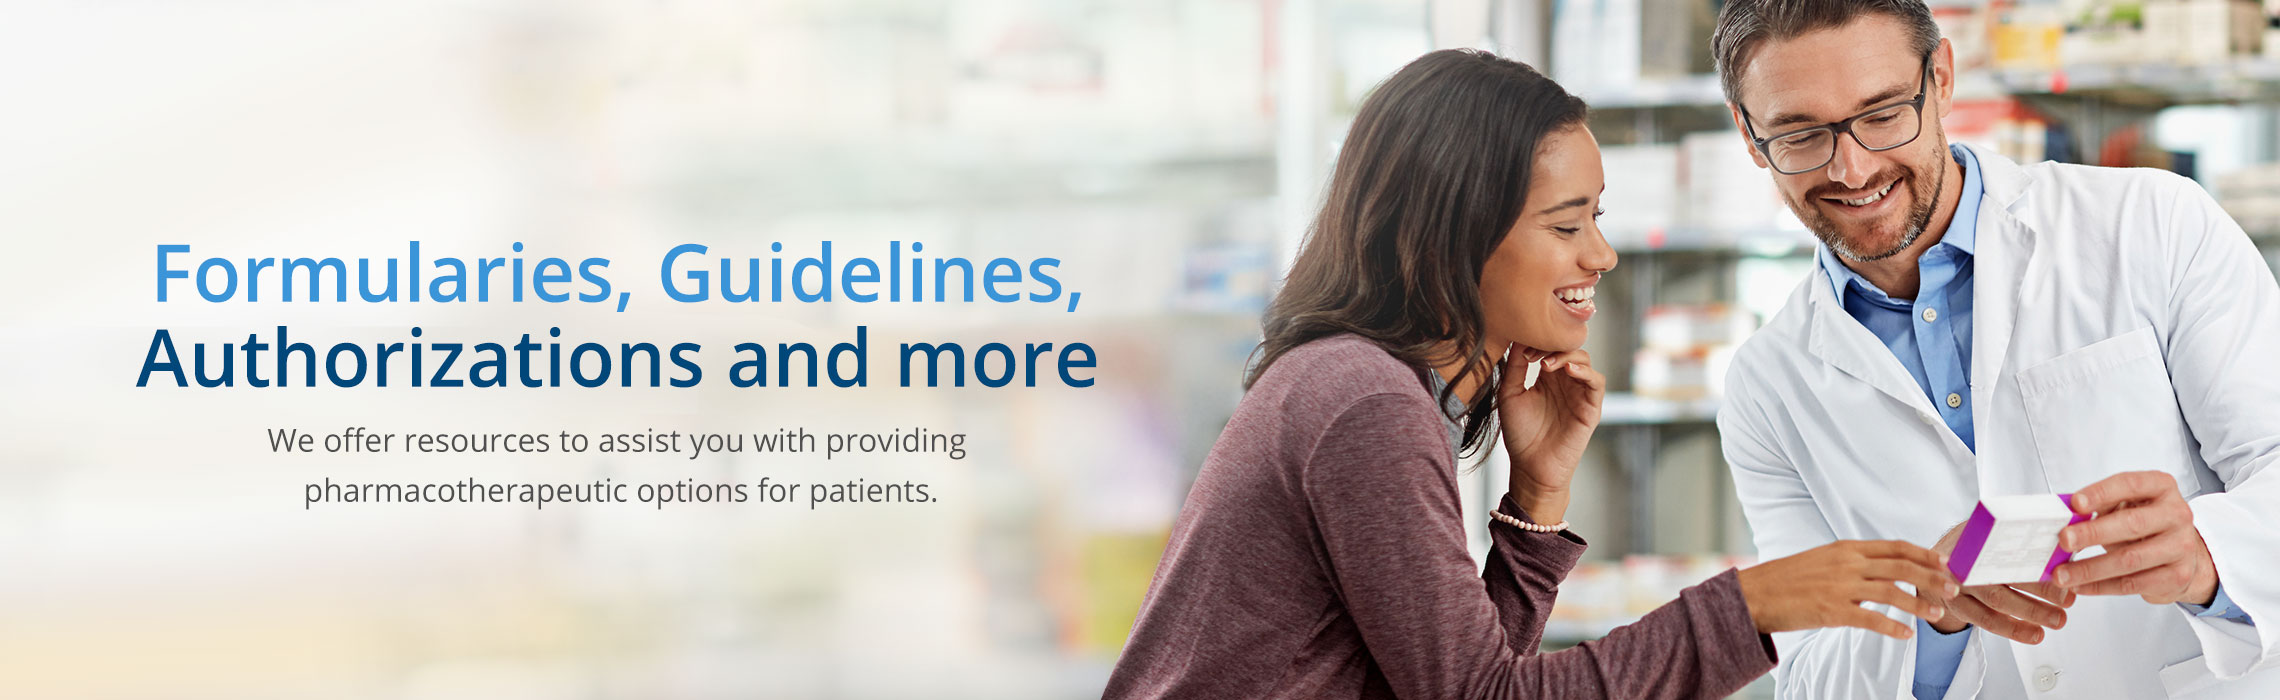 Formularies, Guidelines, Authorizations and More